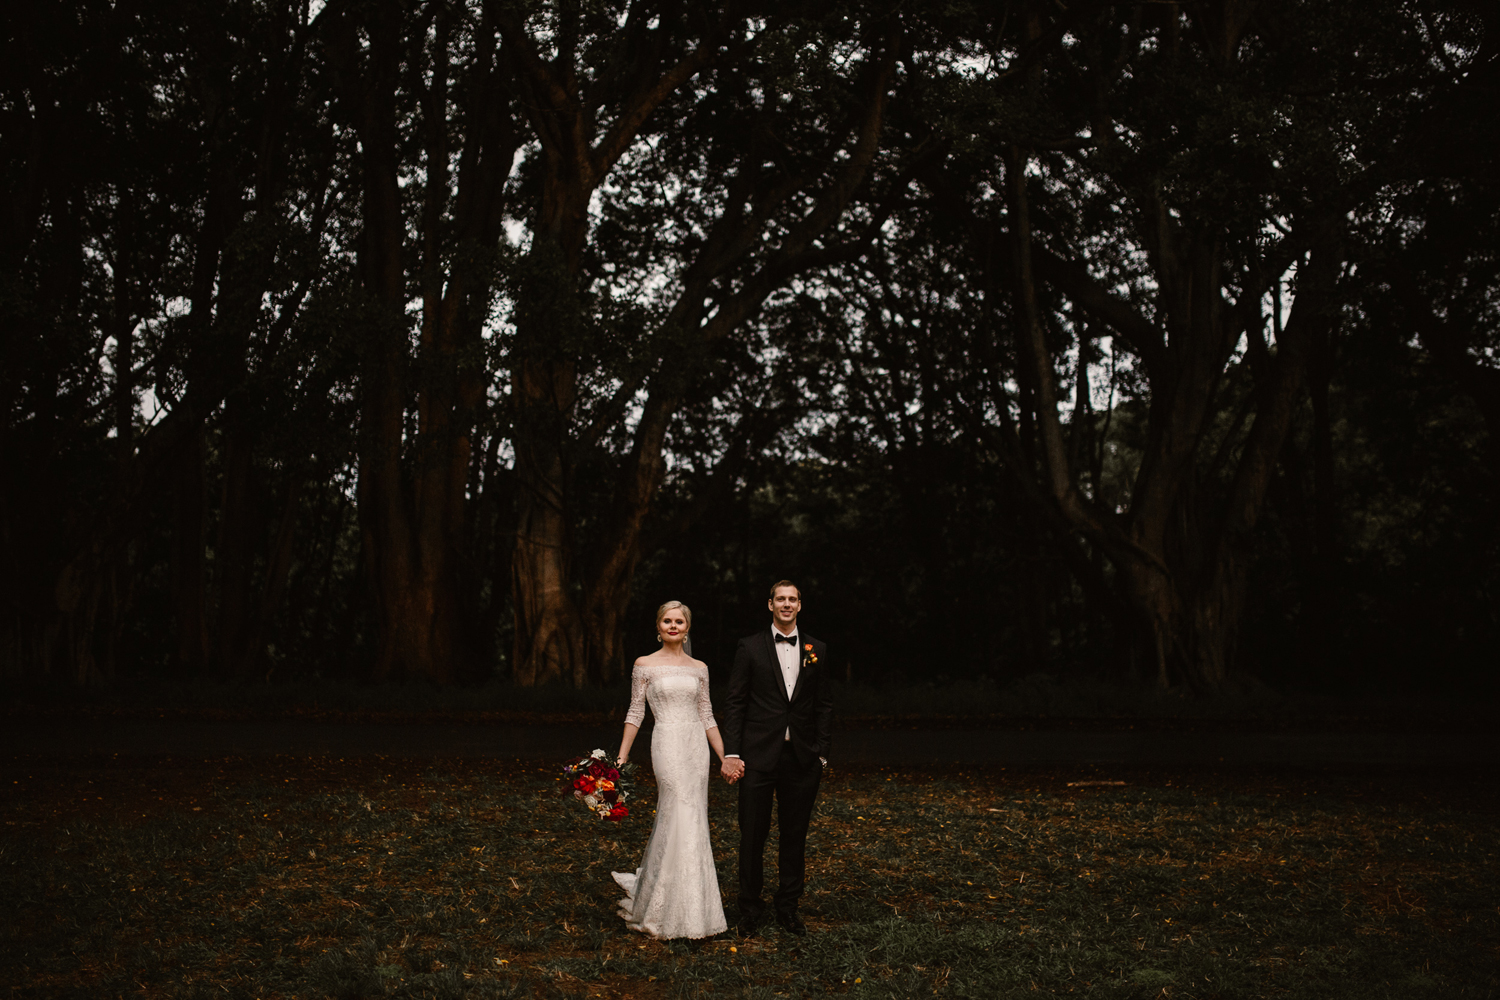 541-byron_bay_wedding_photographer.jpg